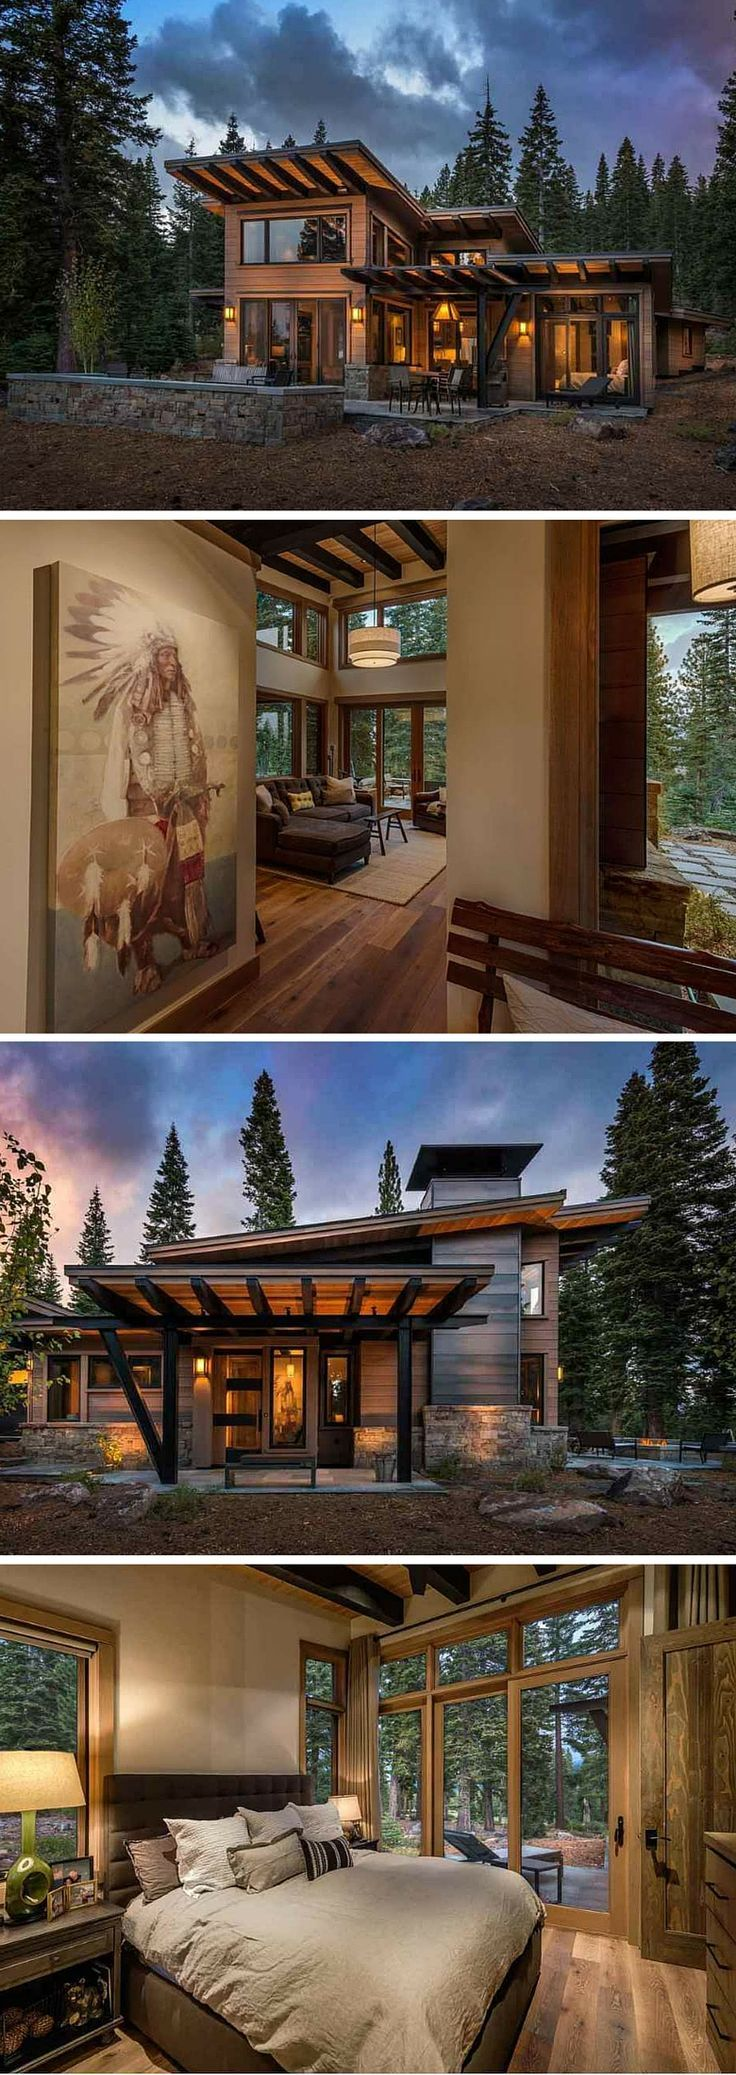 best 25 wood house design ideas on pinterest house in the woods el mejor y mas exclusivo modelo de casa campestre lo tenemos y disenamos en rkconstructions